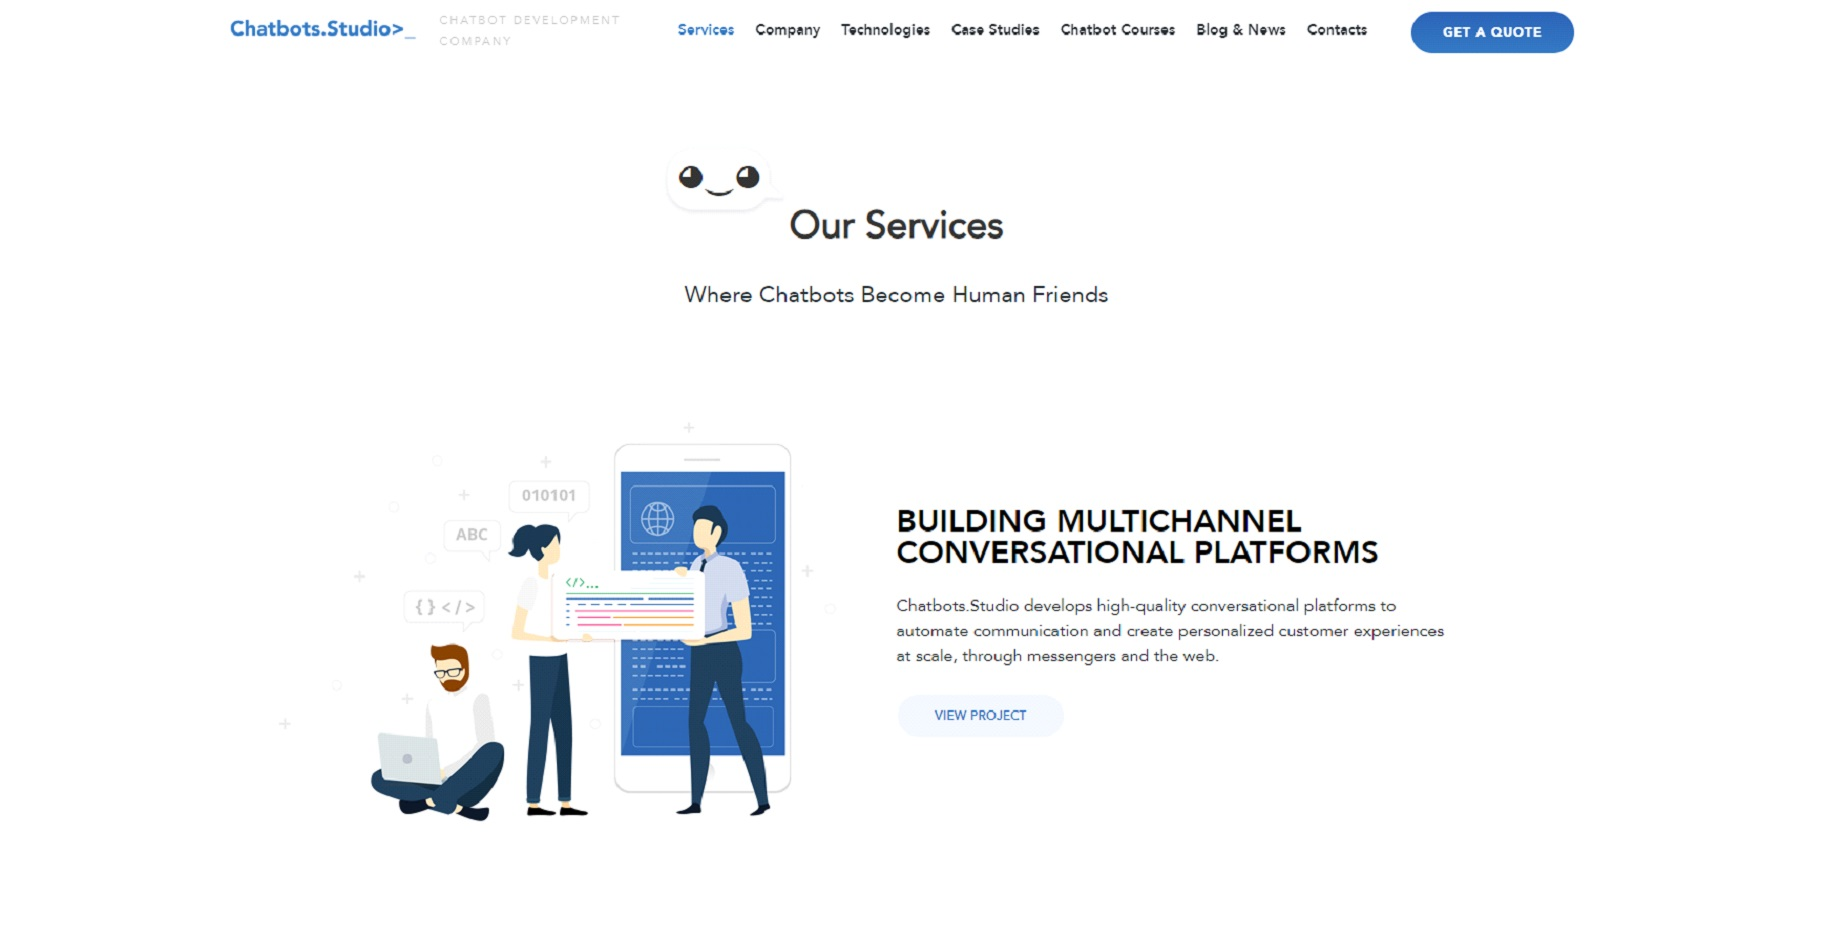 Chatbots.Studio homepage screen